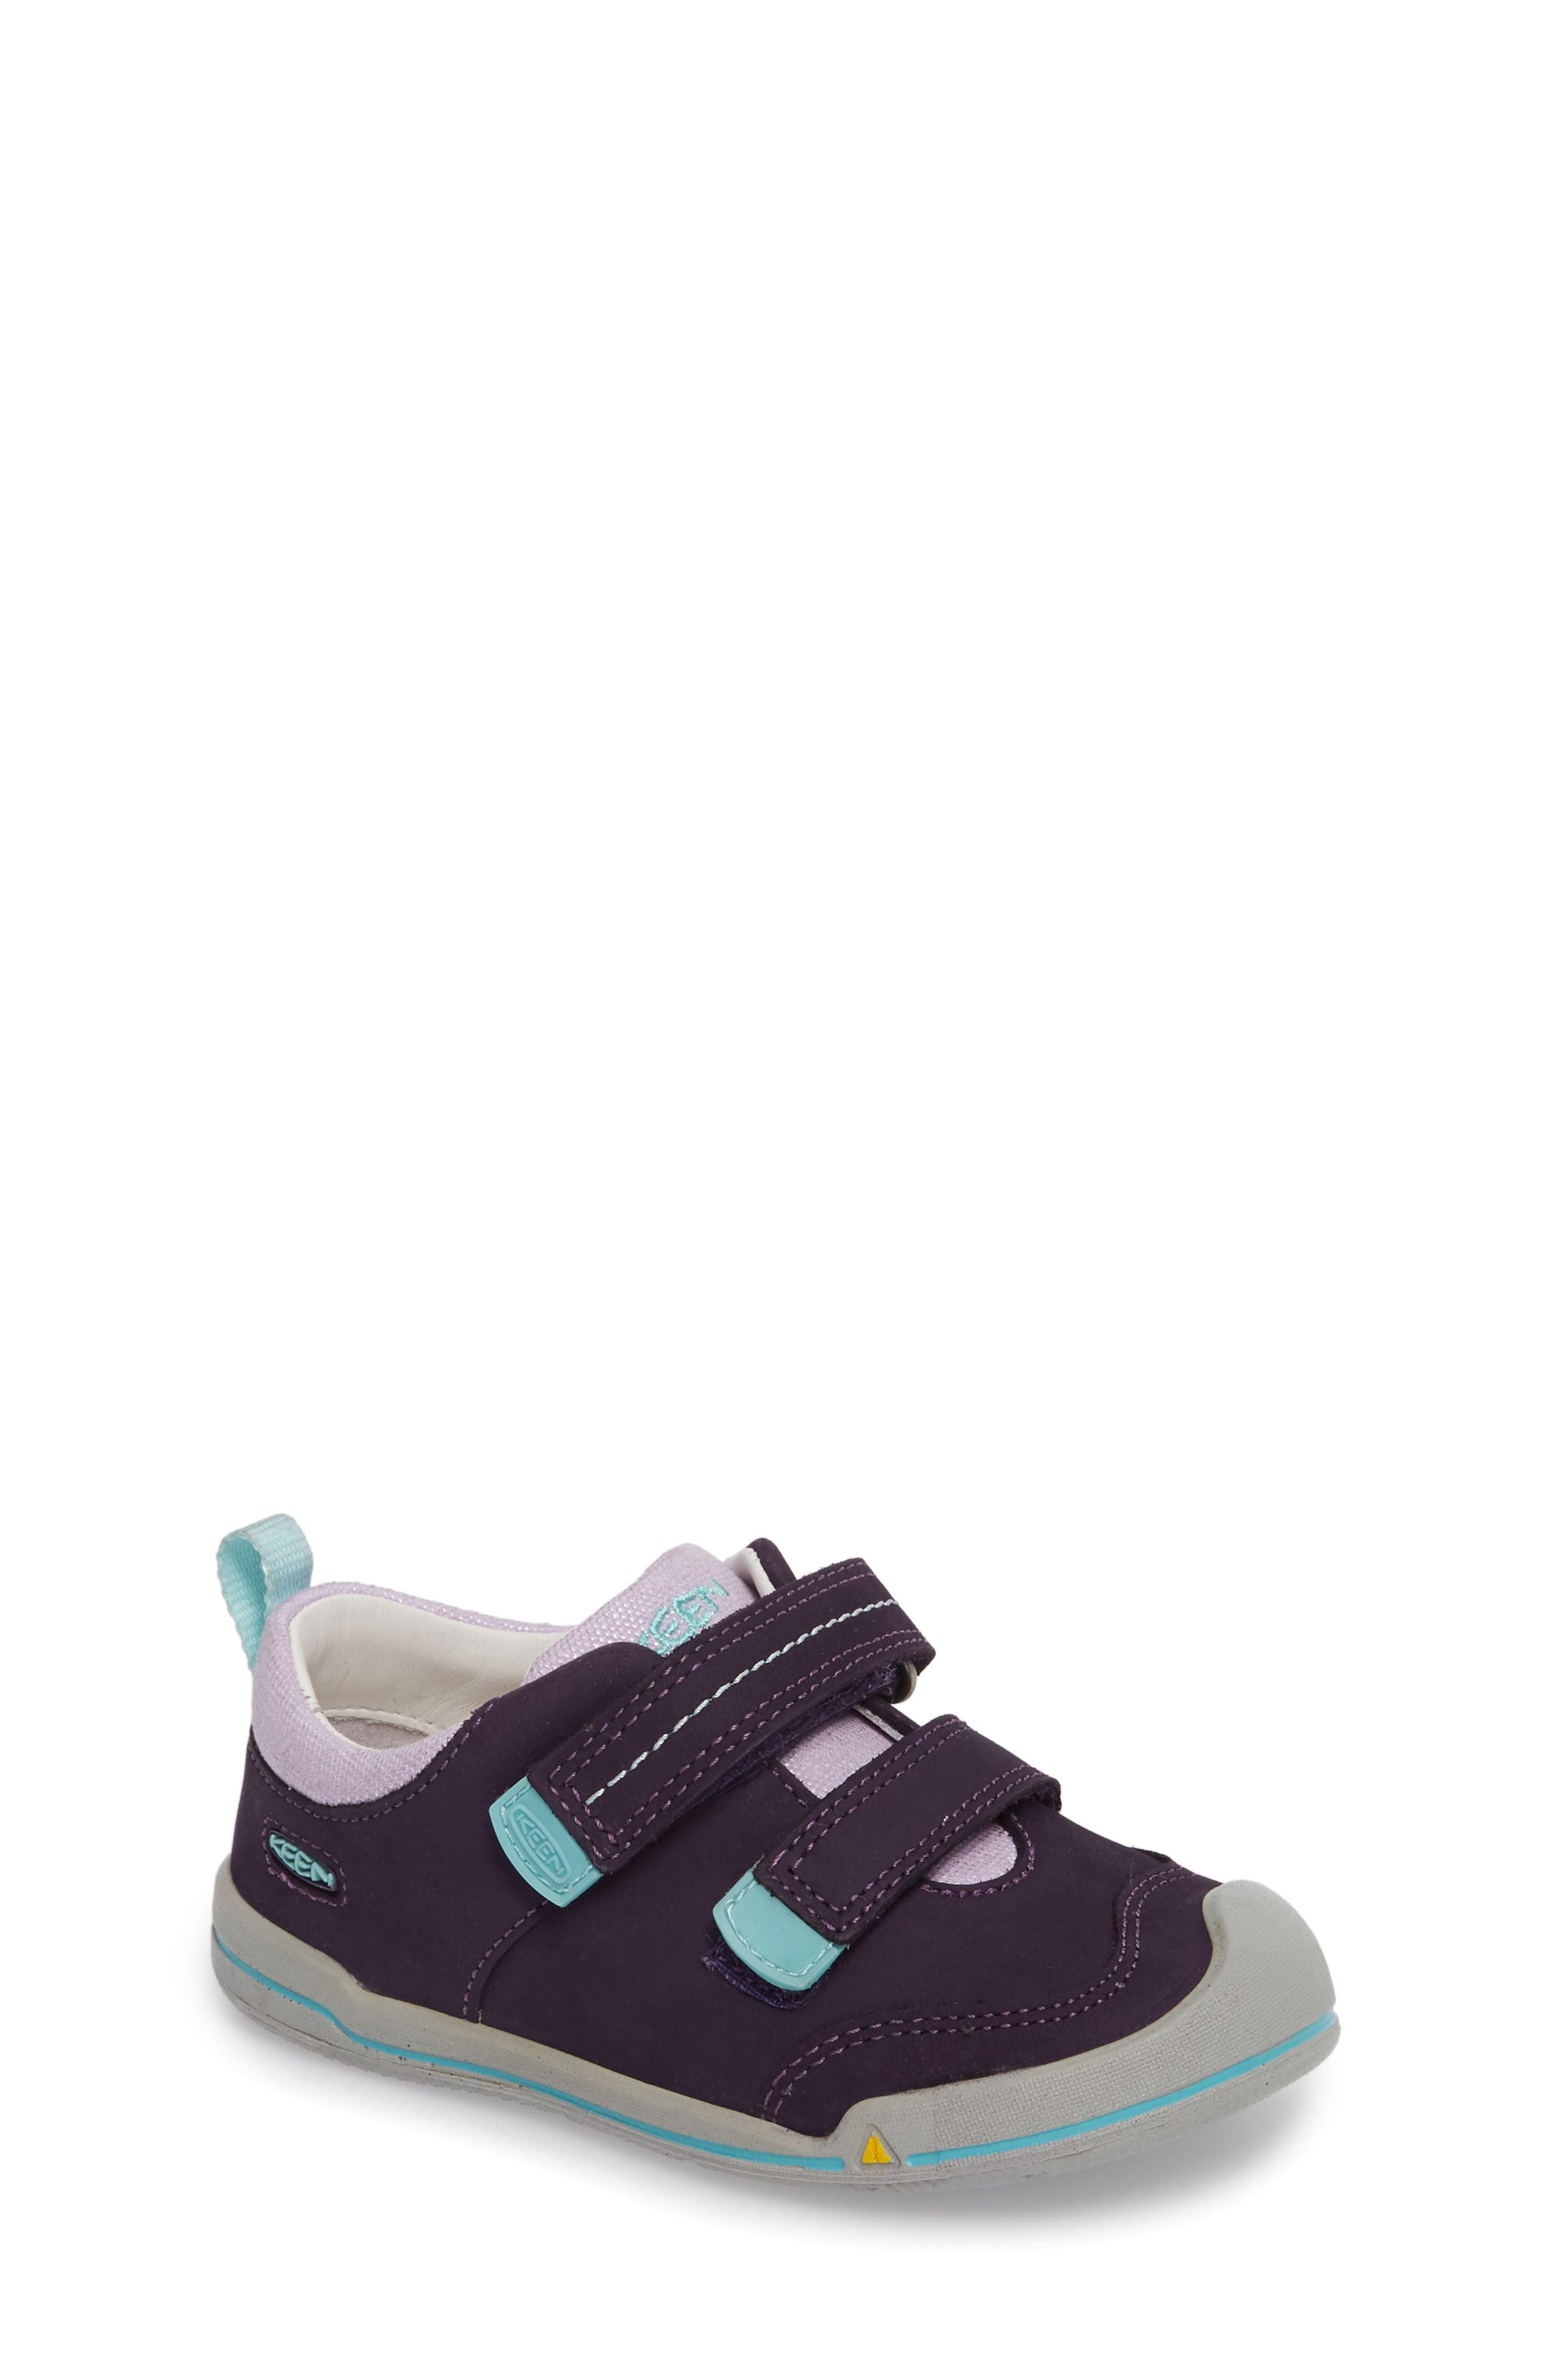 Keen Sprout Double Strap Sneaker (Walker & Toddler)